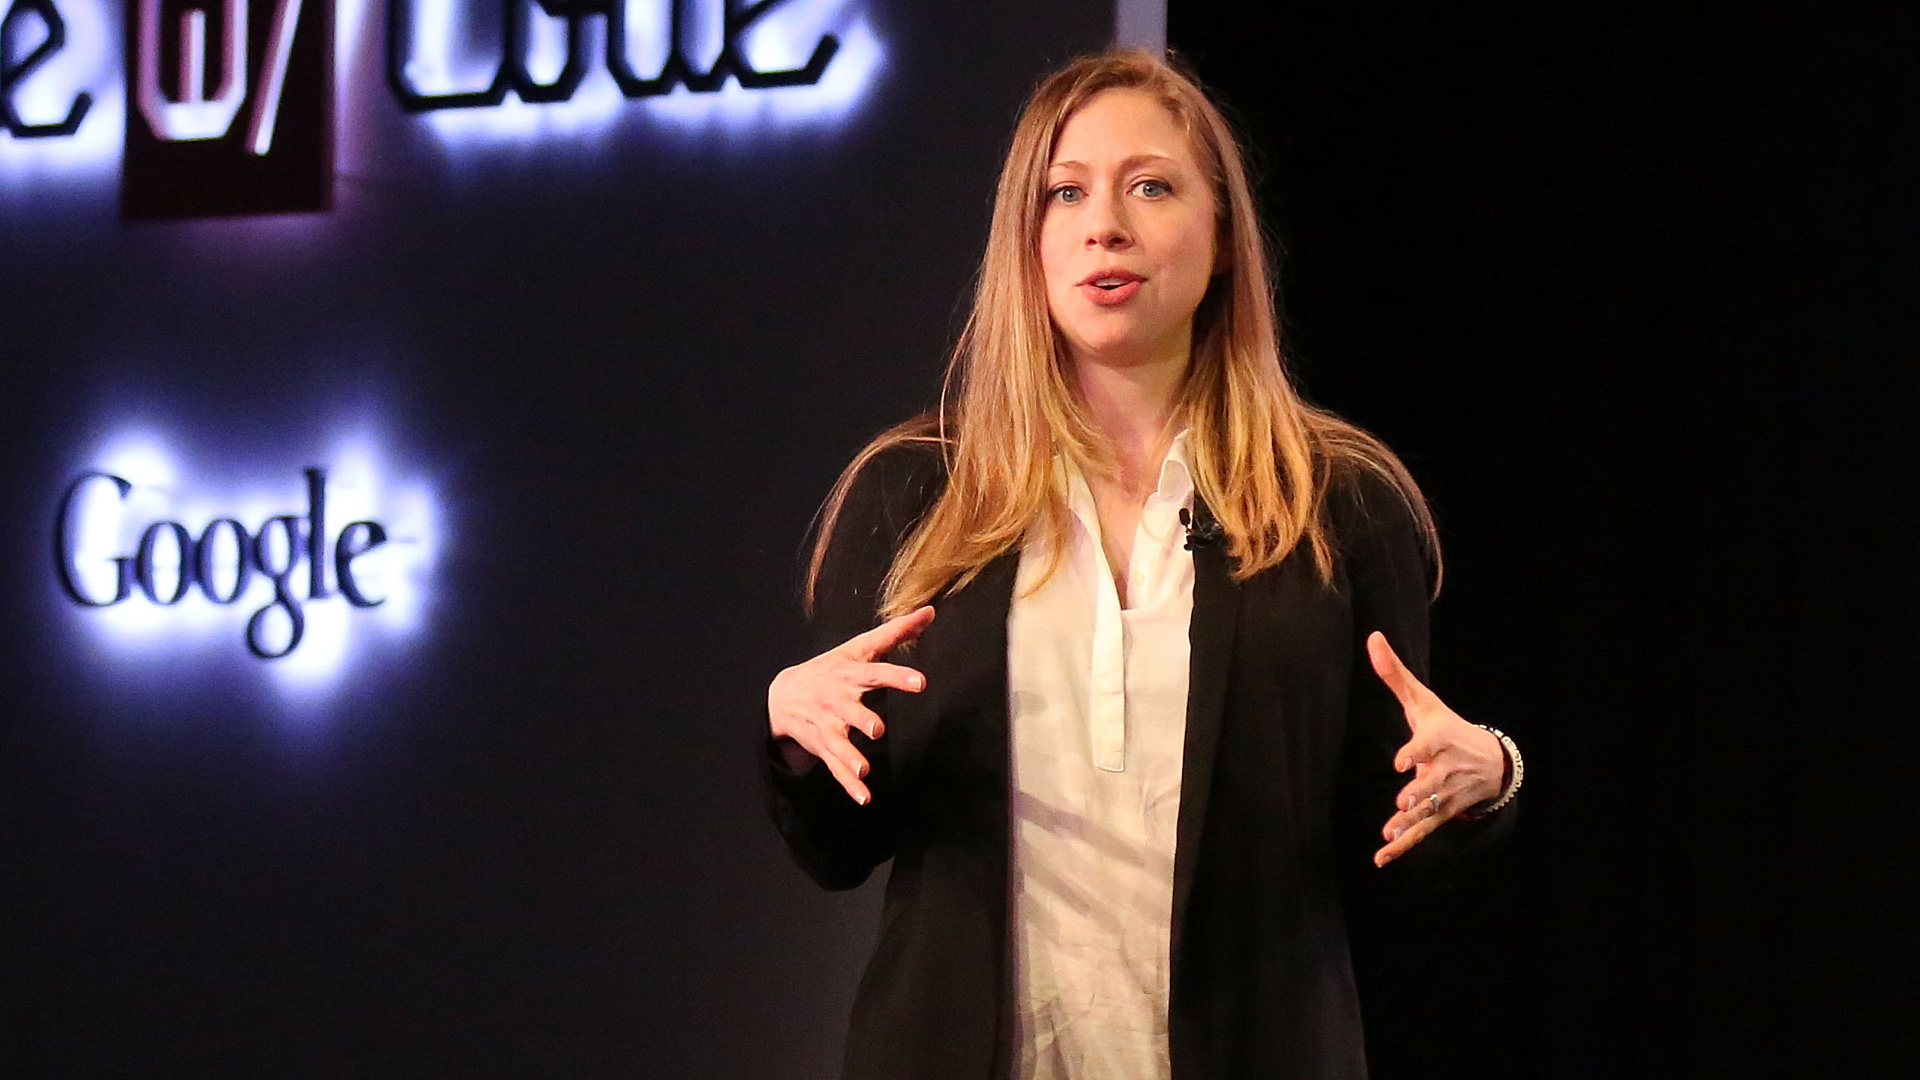 Chelsea Clinton at Made with Code event